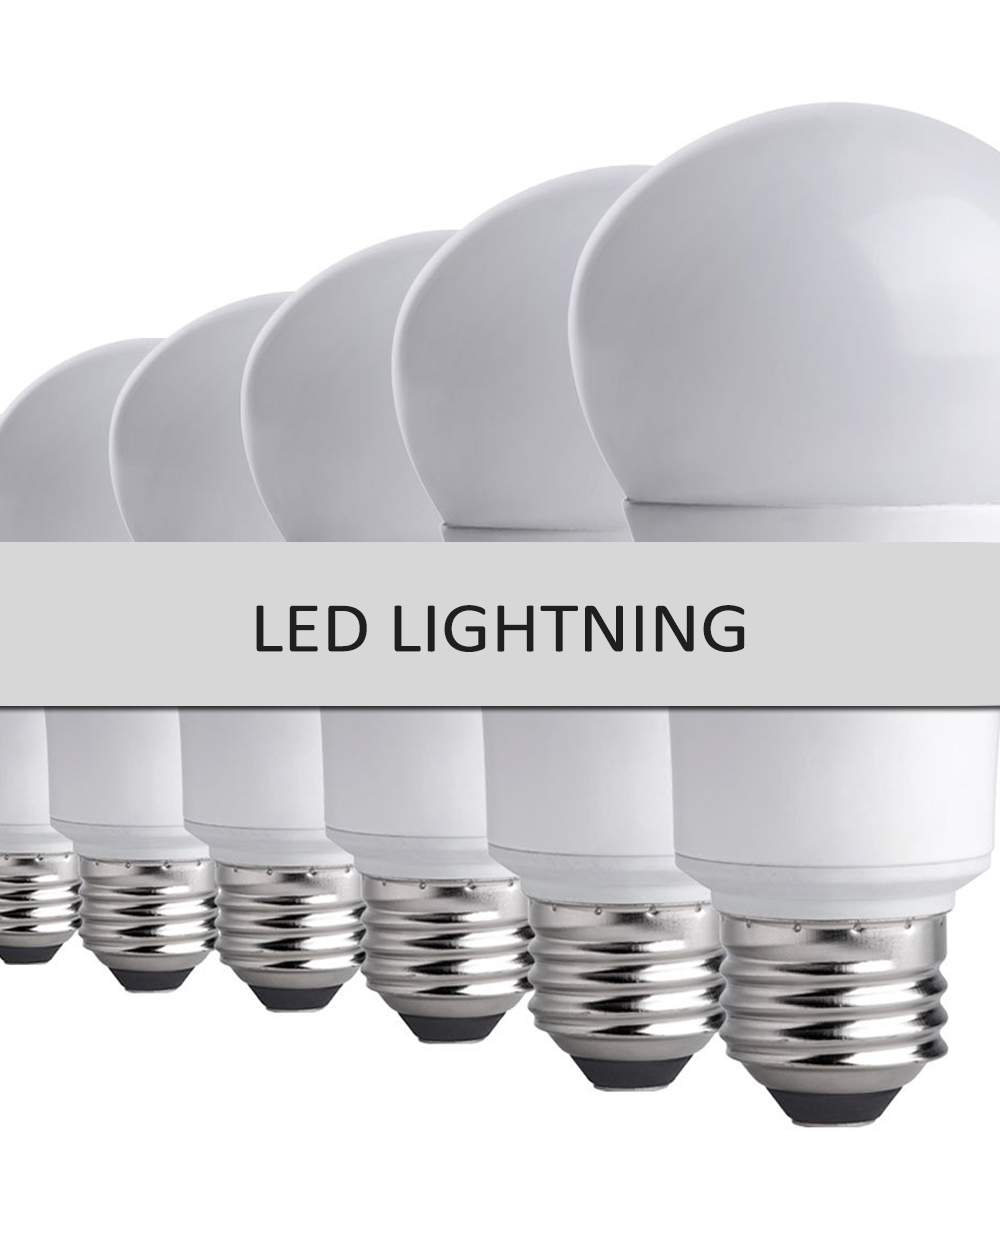 Buy High Quality LED Lights that come with 3 - 5 Year Warranty! South Africa